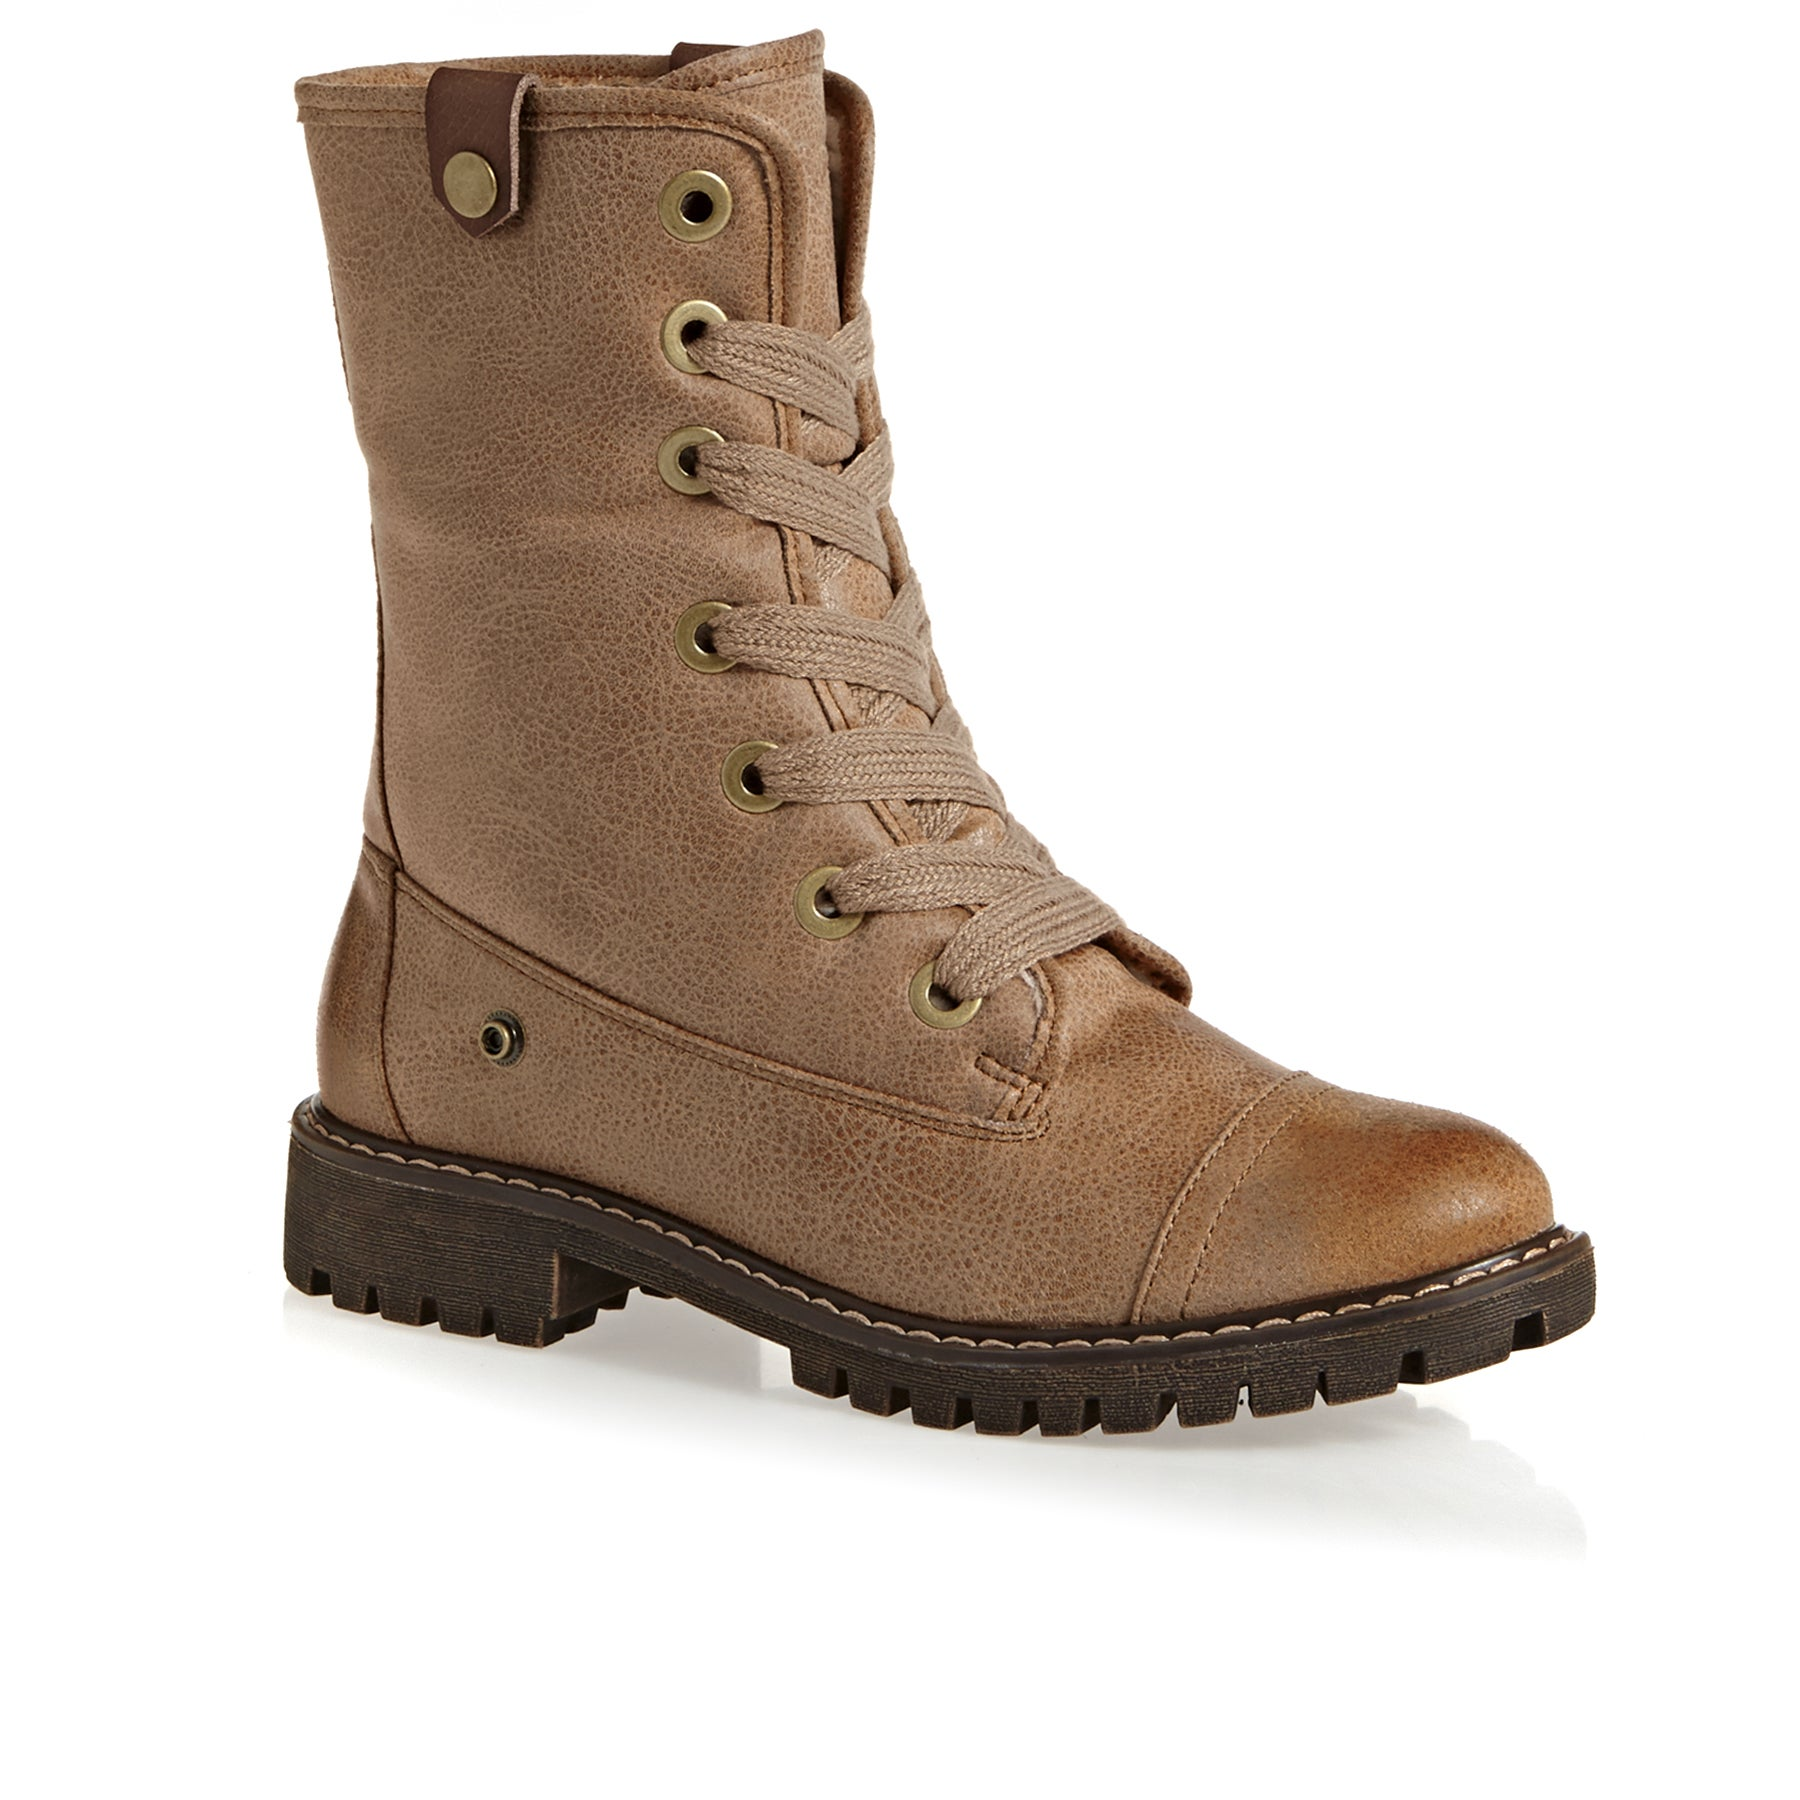 Roxy Bruna J Ladies Boots